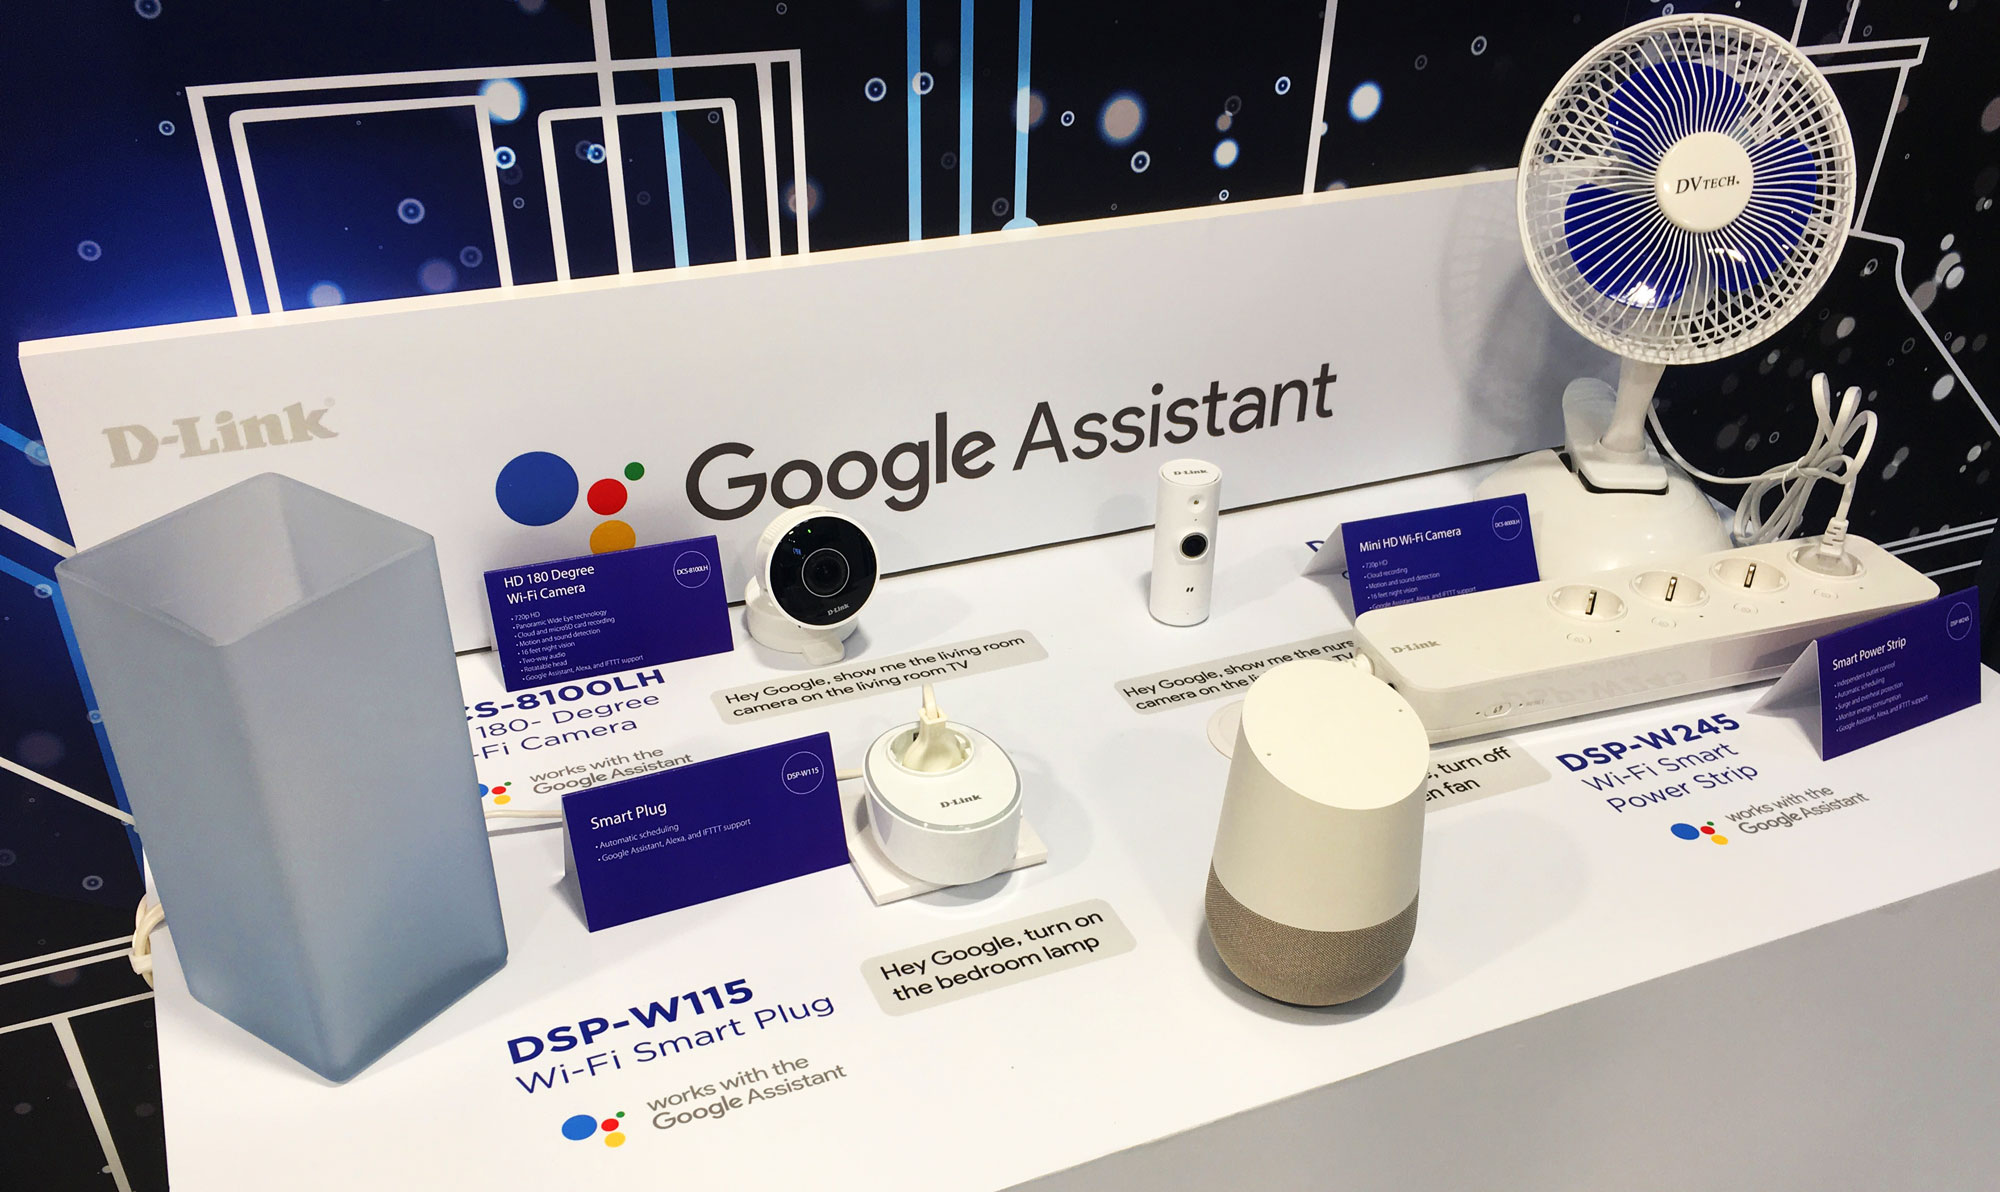 Google Assistant compatible D-Link products